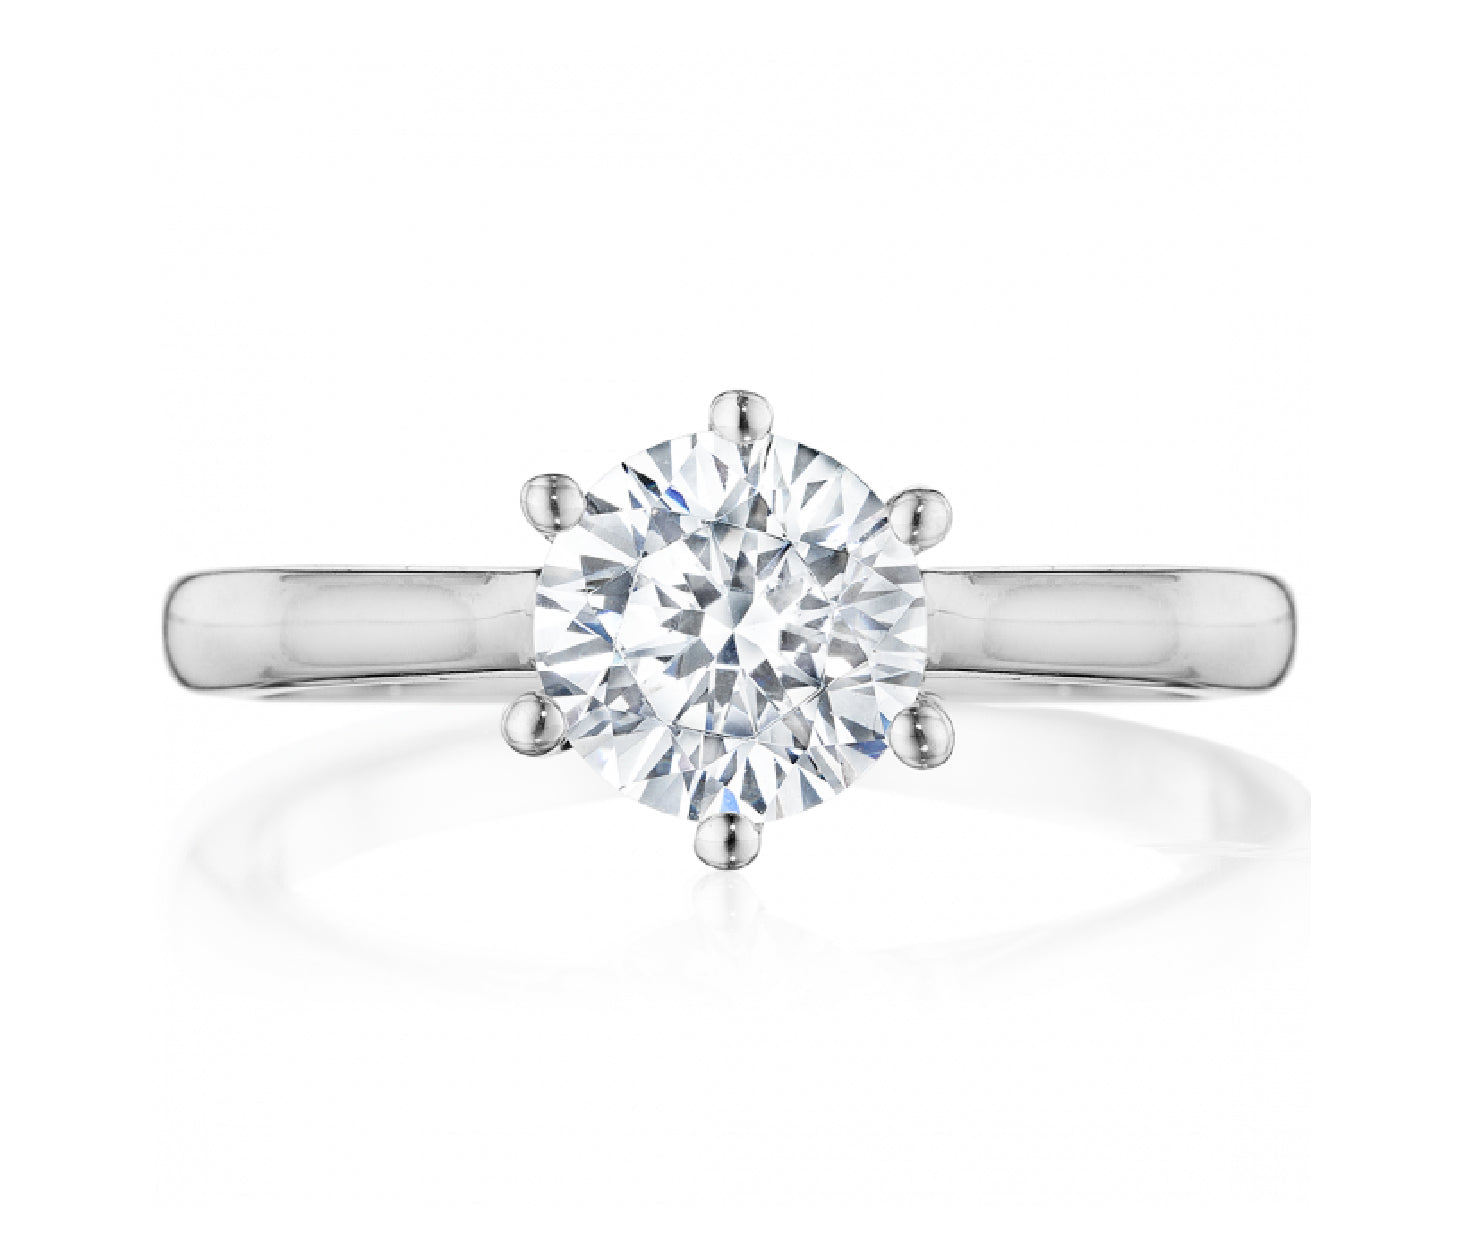 14K White Gold Classic Six Prong Engagement Ring